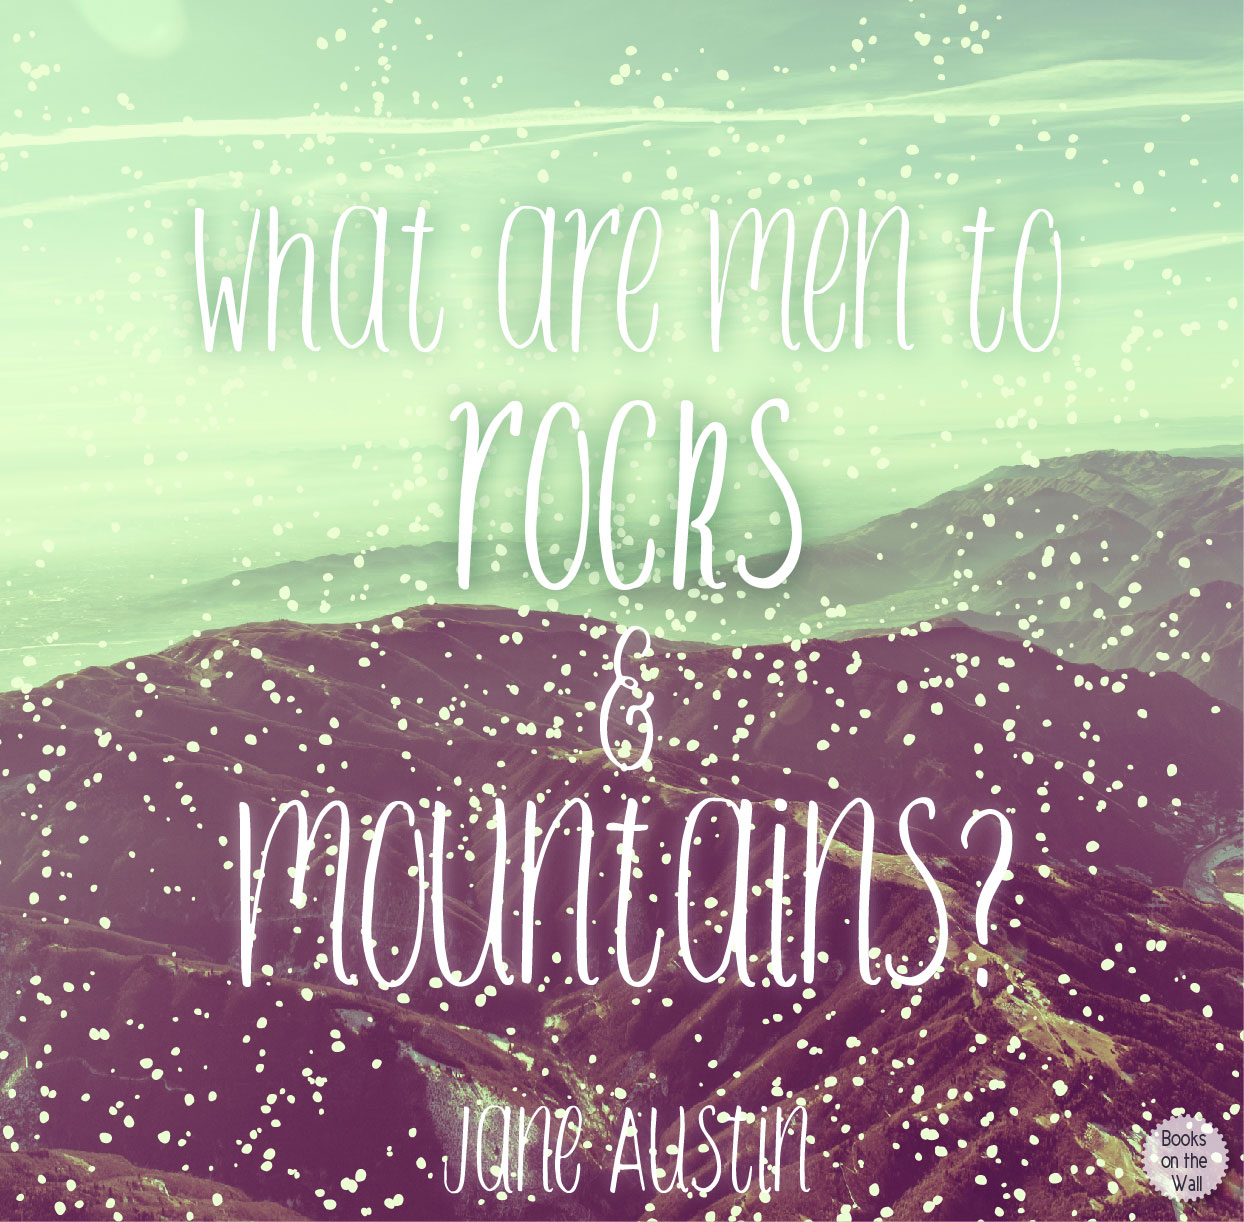 What Are Men To Mountains And Rocks Jane Austen Pride Prejudice